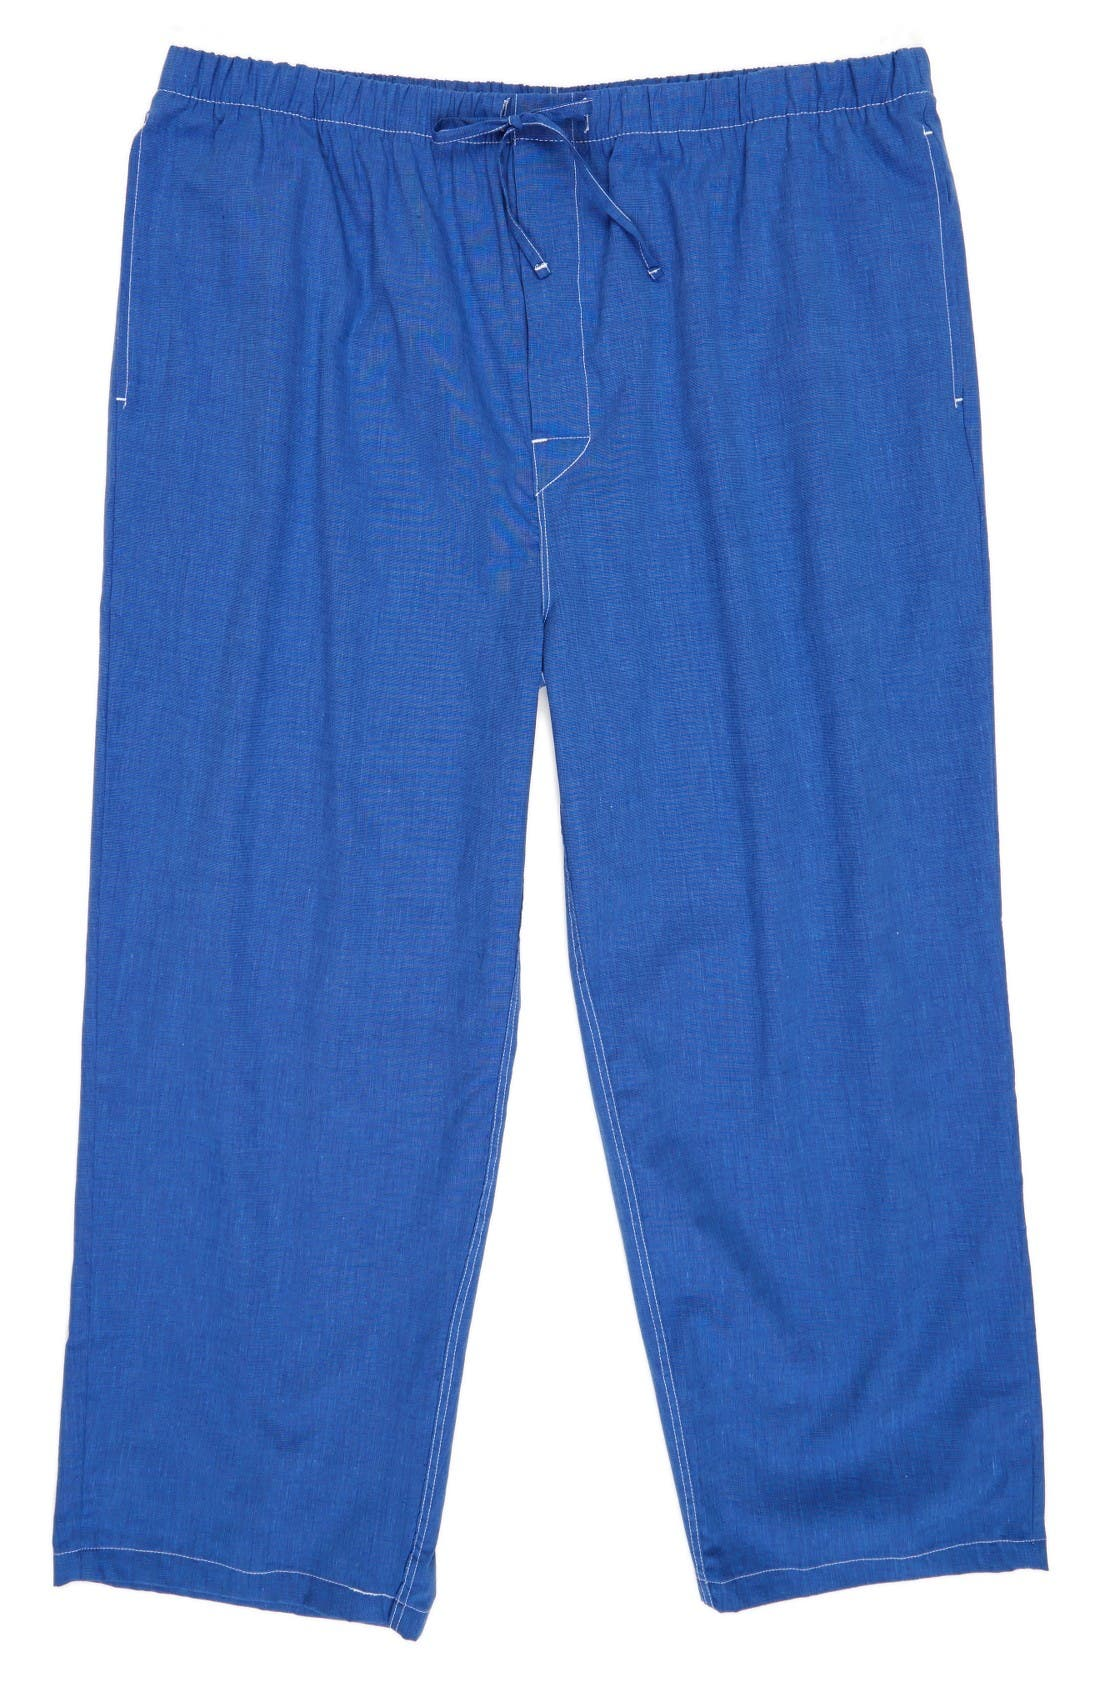 NORDSTROM MEN'S SHOP Lounge Pants